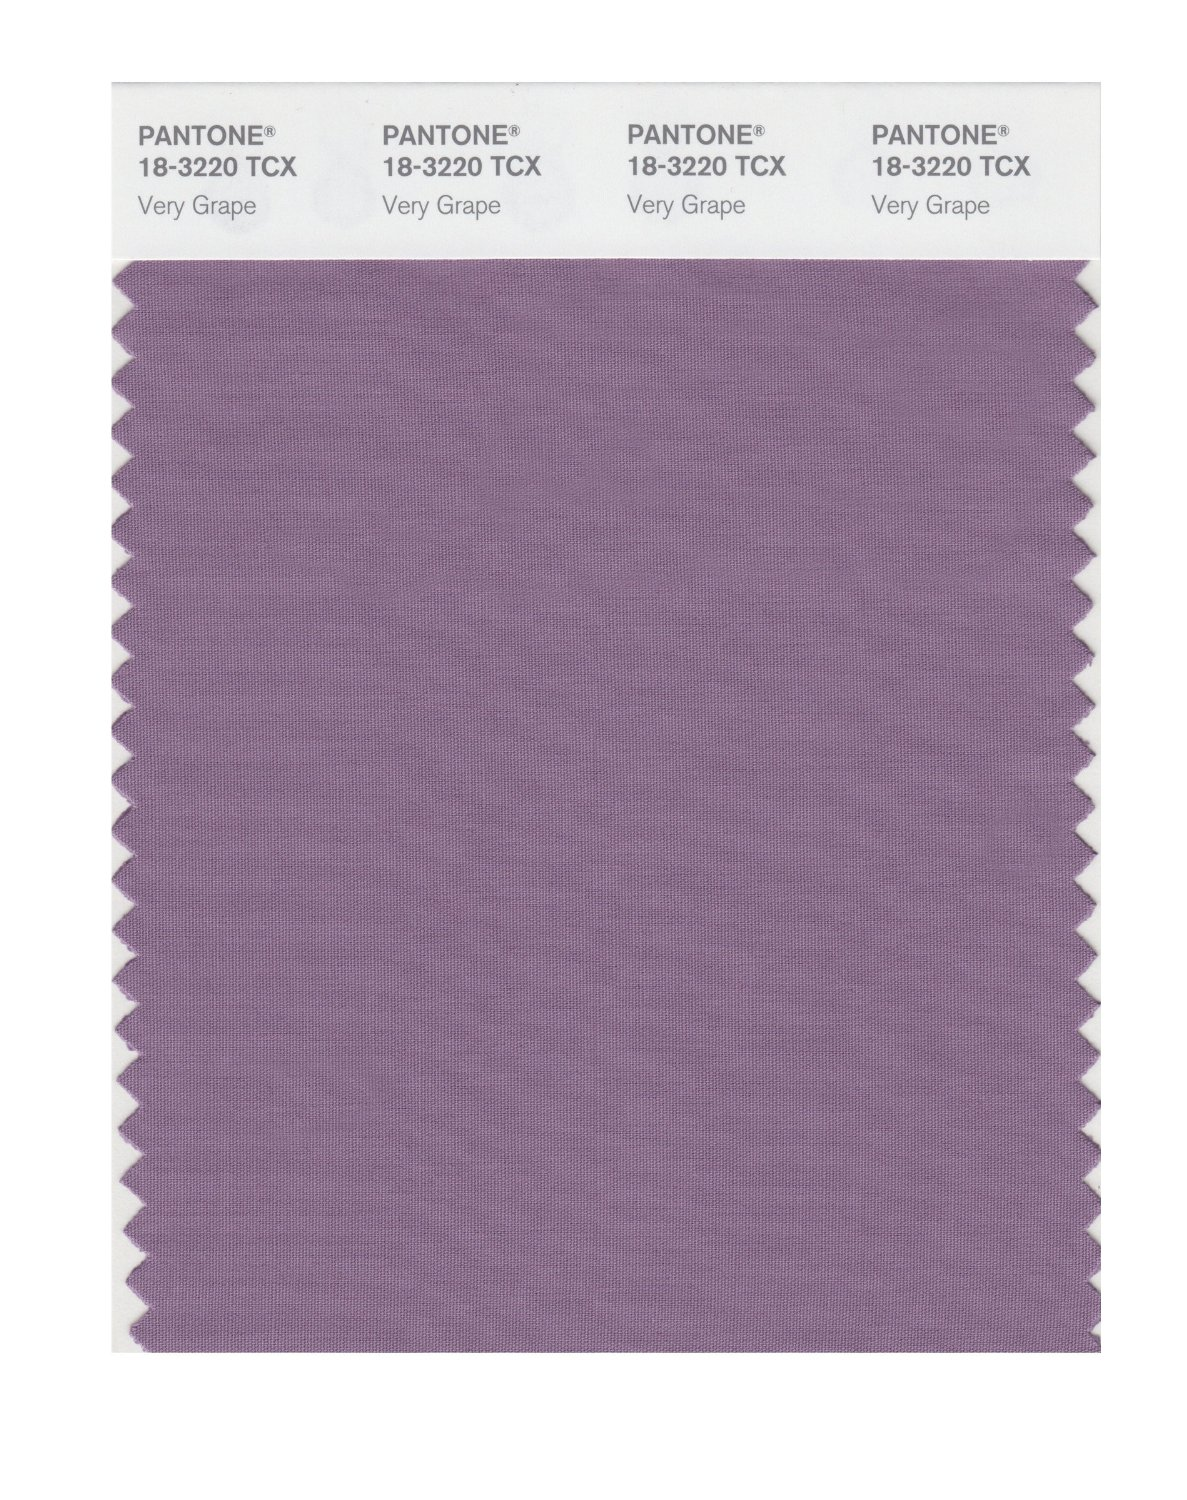 Pantone Smart Swatch 18-3220 Very Grape